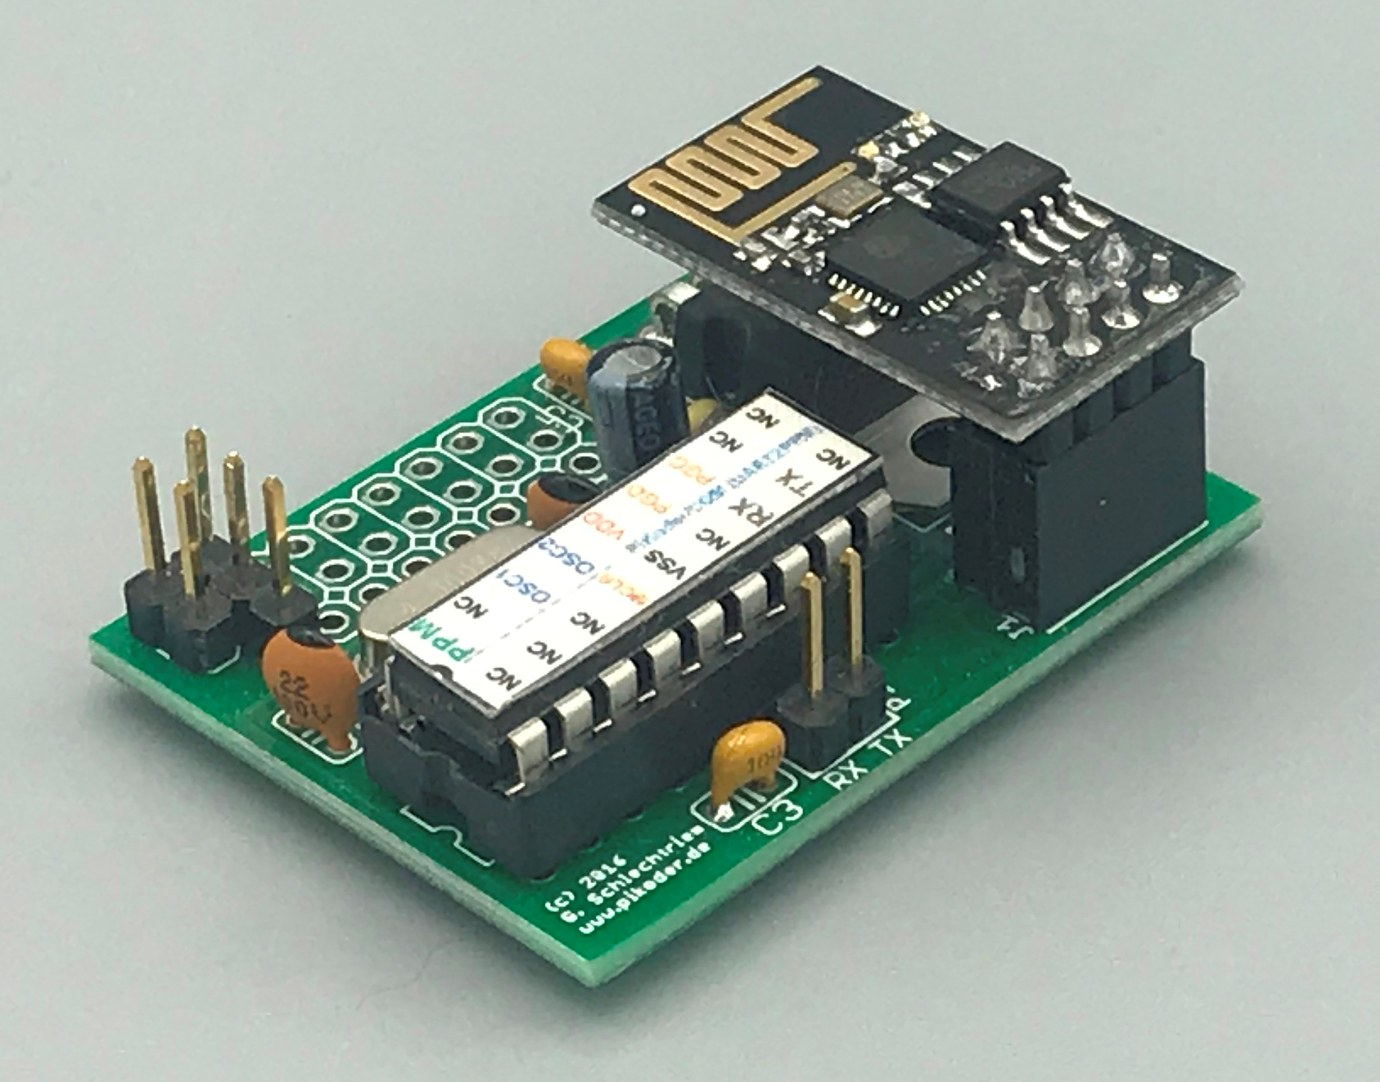 PiKoder/PPM wRX: PiKoder/PPM WLAN R/C receiver with PPM Output